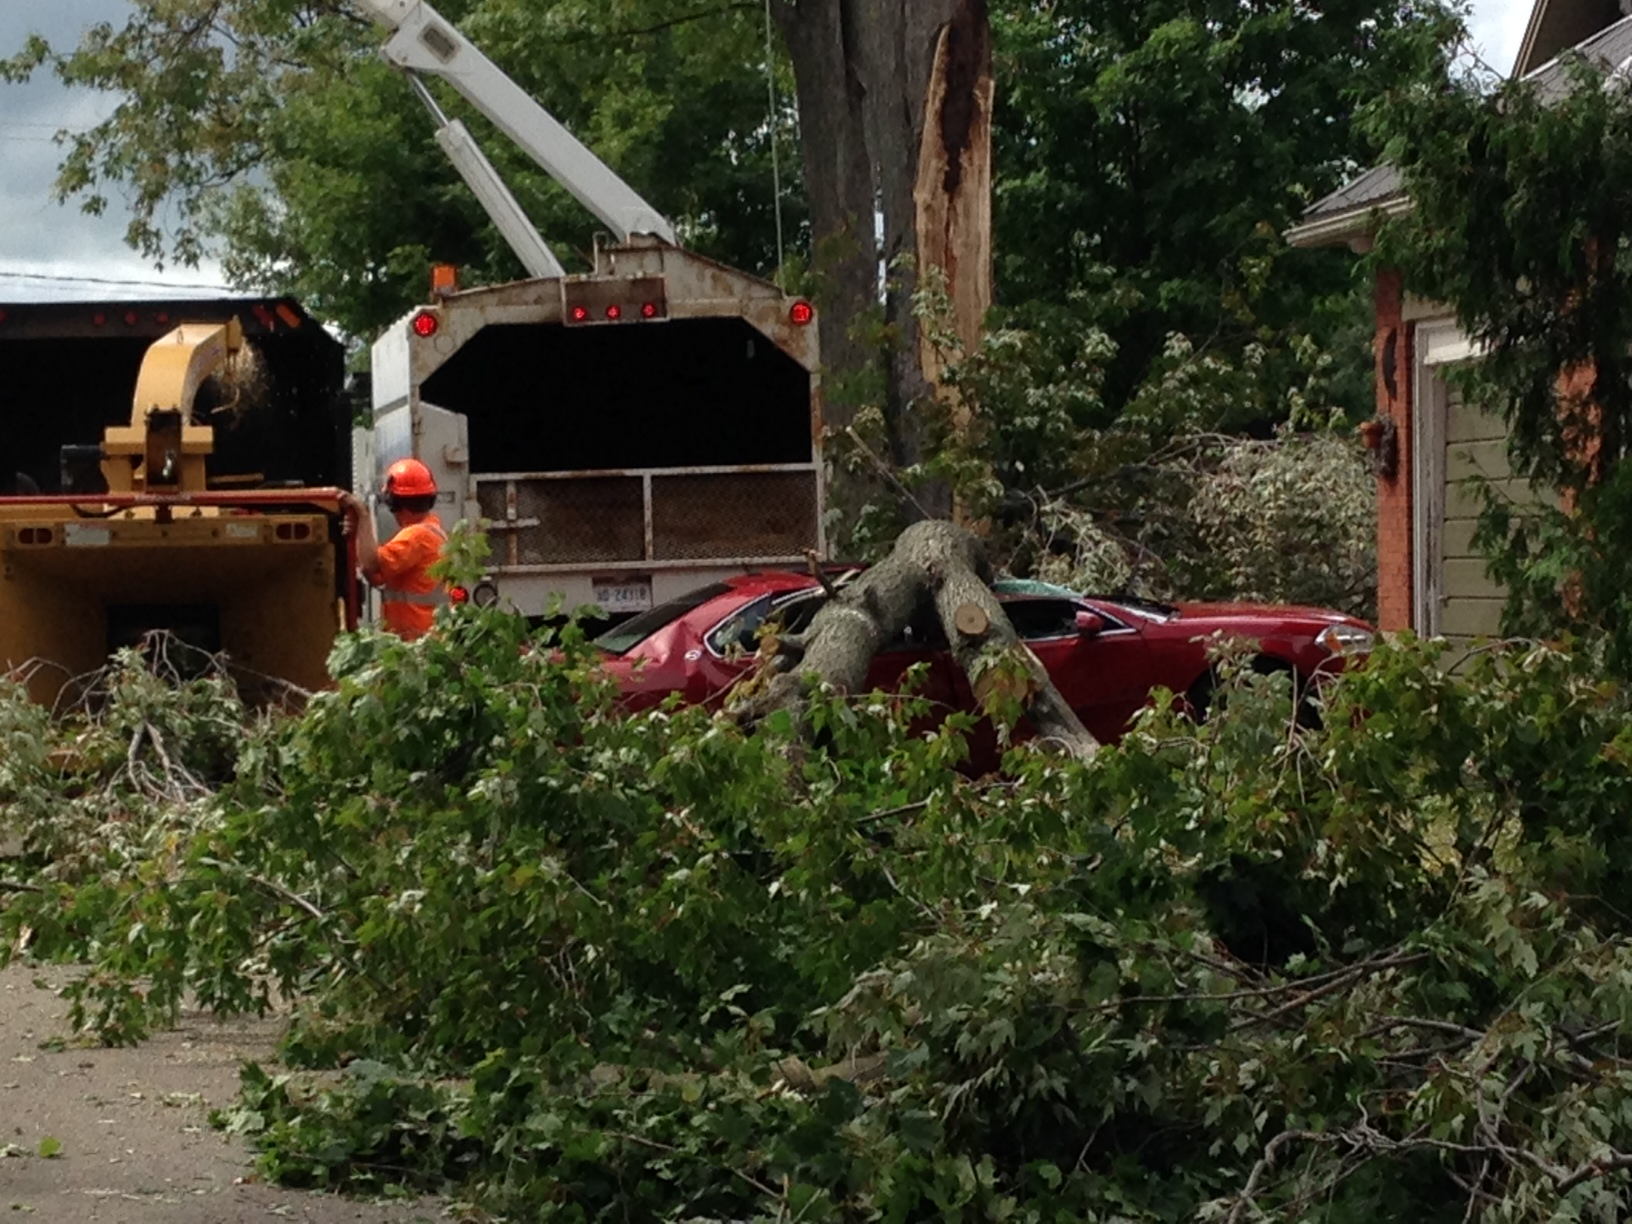 Damage on Isabella St. Wyoming in the aftermath of severe storms Sept 5, 2014 (photo by Sue Storr)